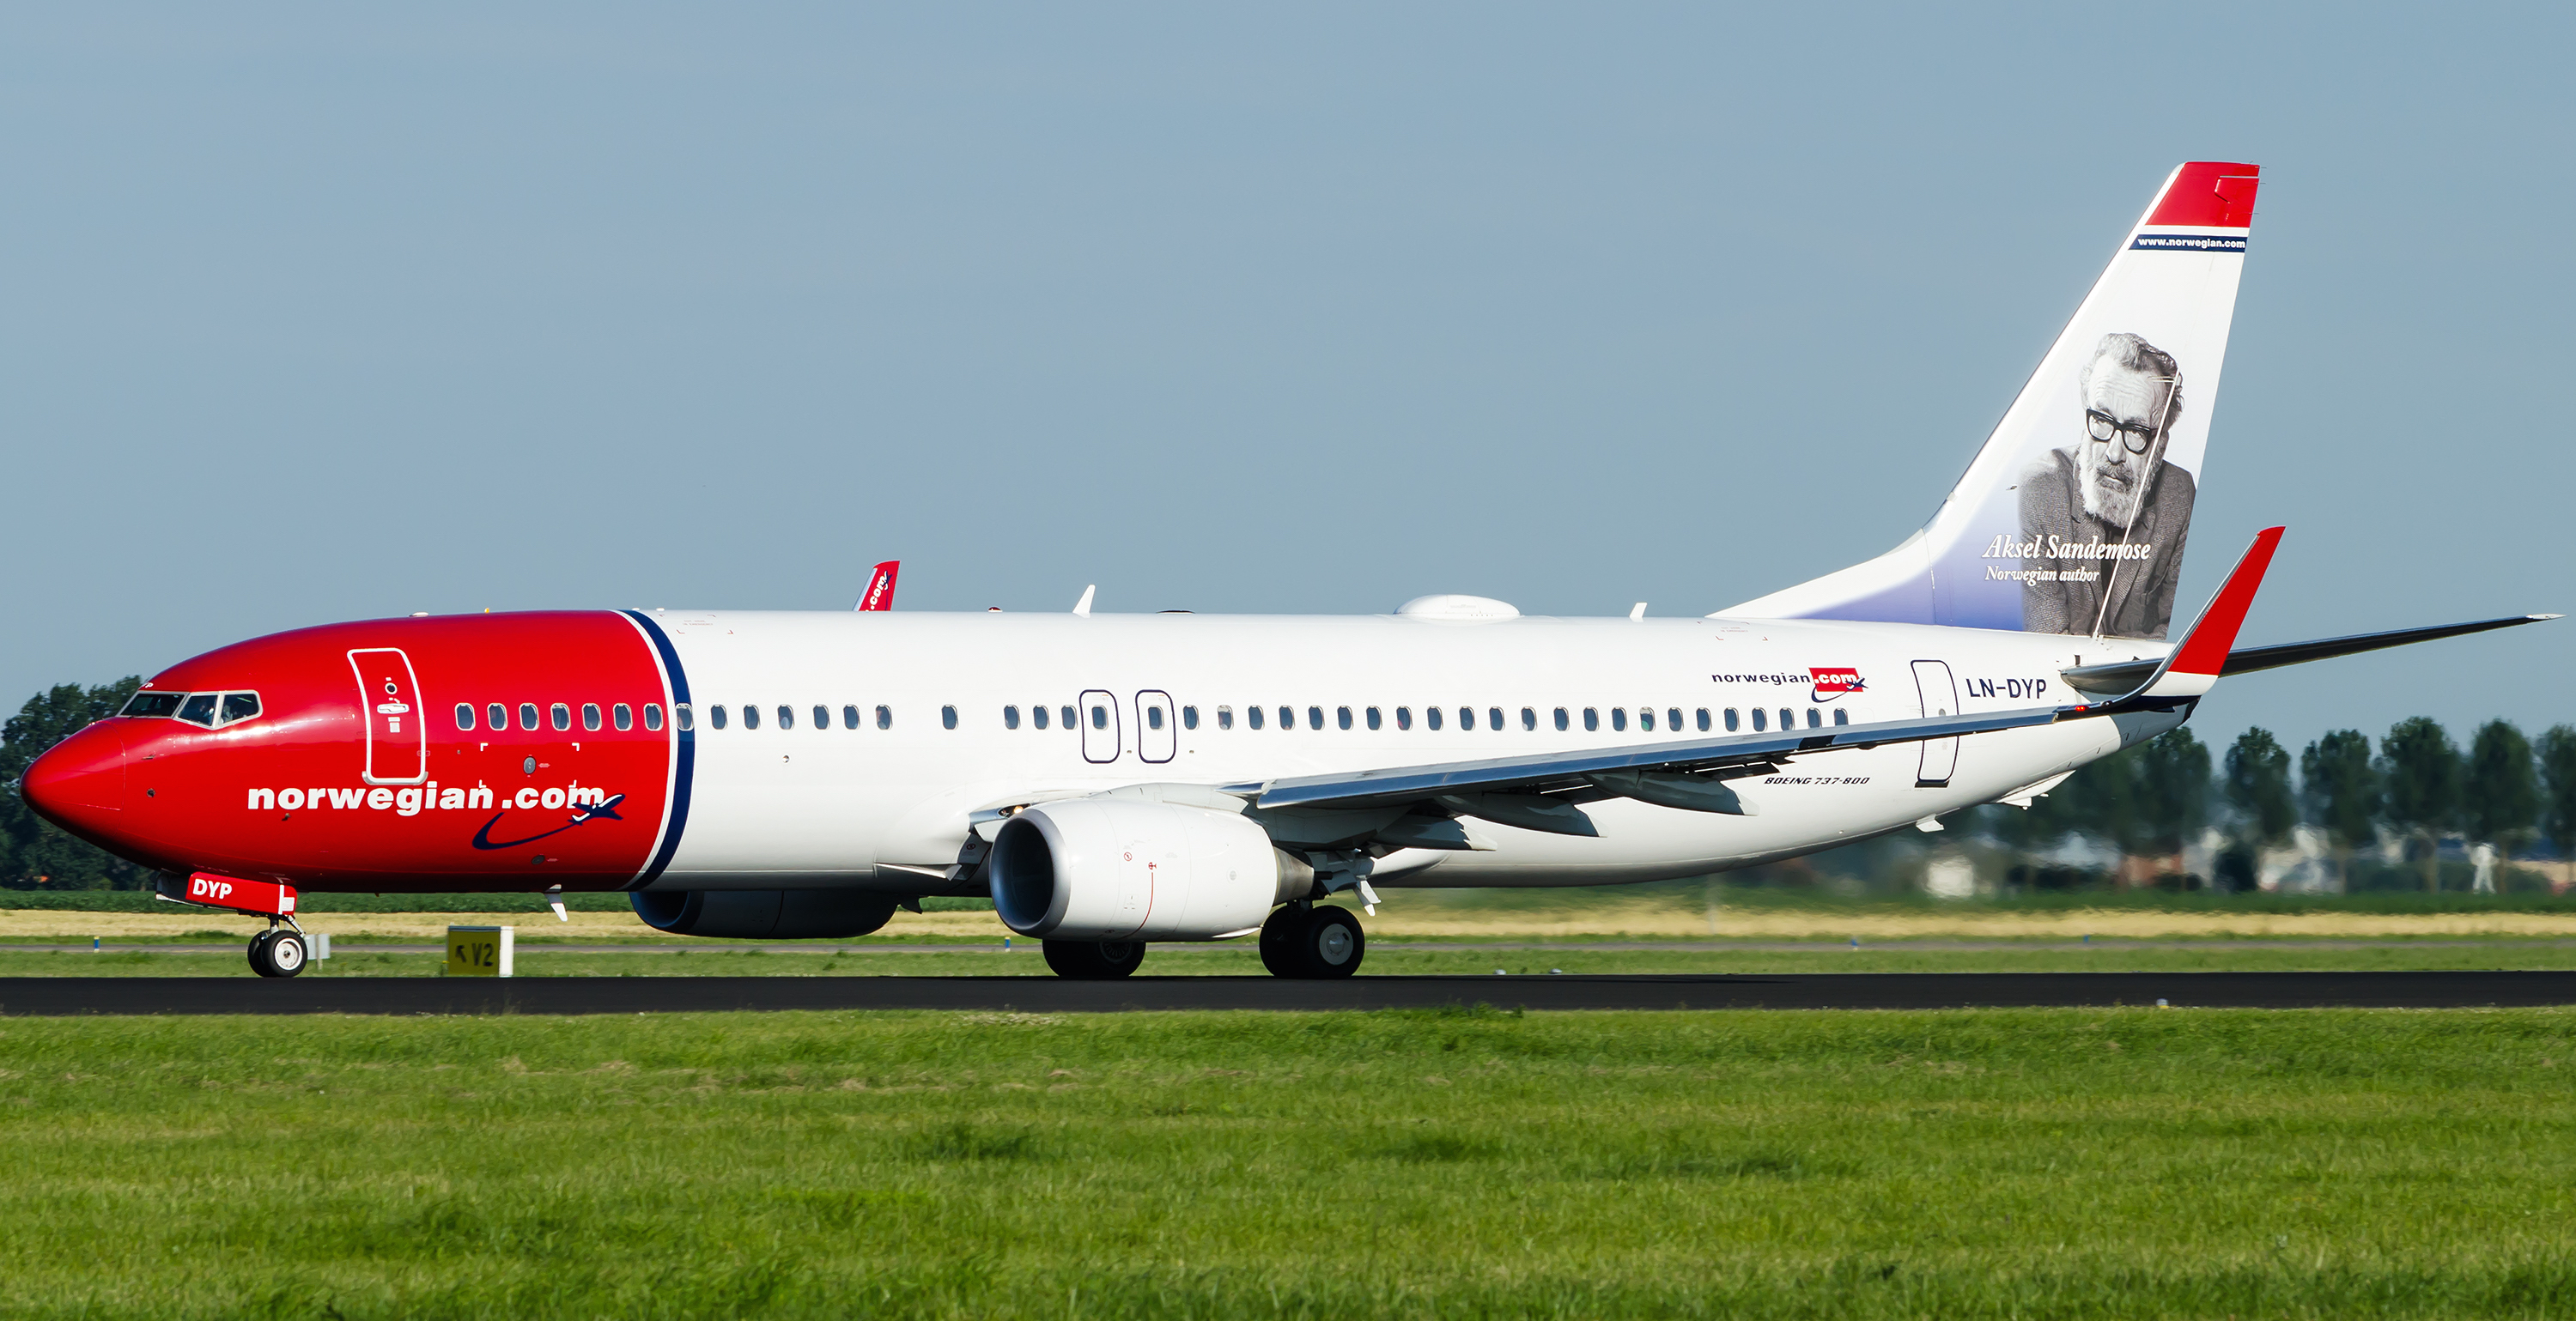 norwegian_air_shuttle_boeing_737_8jp_by_sliverfoxnl-d58ojuy